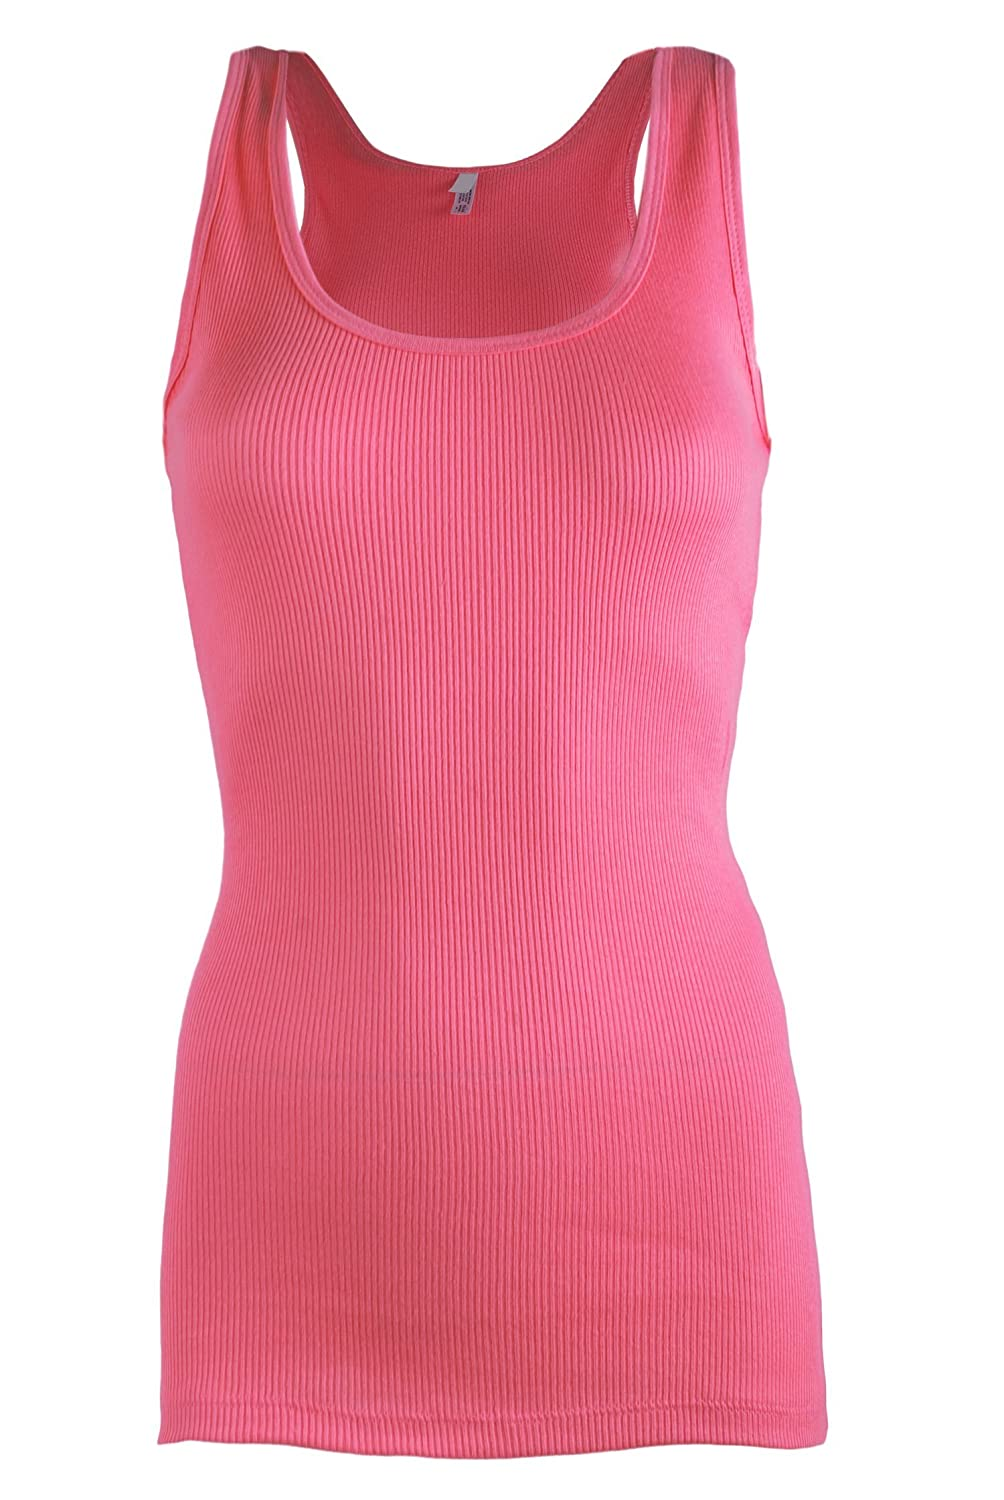 b61854ef7dbb5a 5% spandex. LAB301 Women s Basic Casual Cotton Jersey Tank Top Blouse in  Different Styles Tank top perfect for everyday wear or for layering.  Stretchable ...